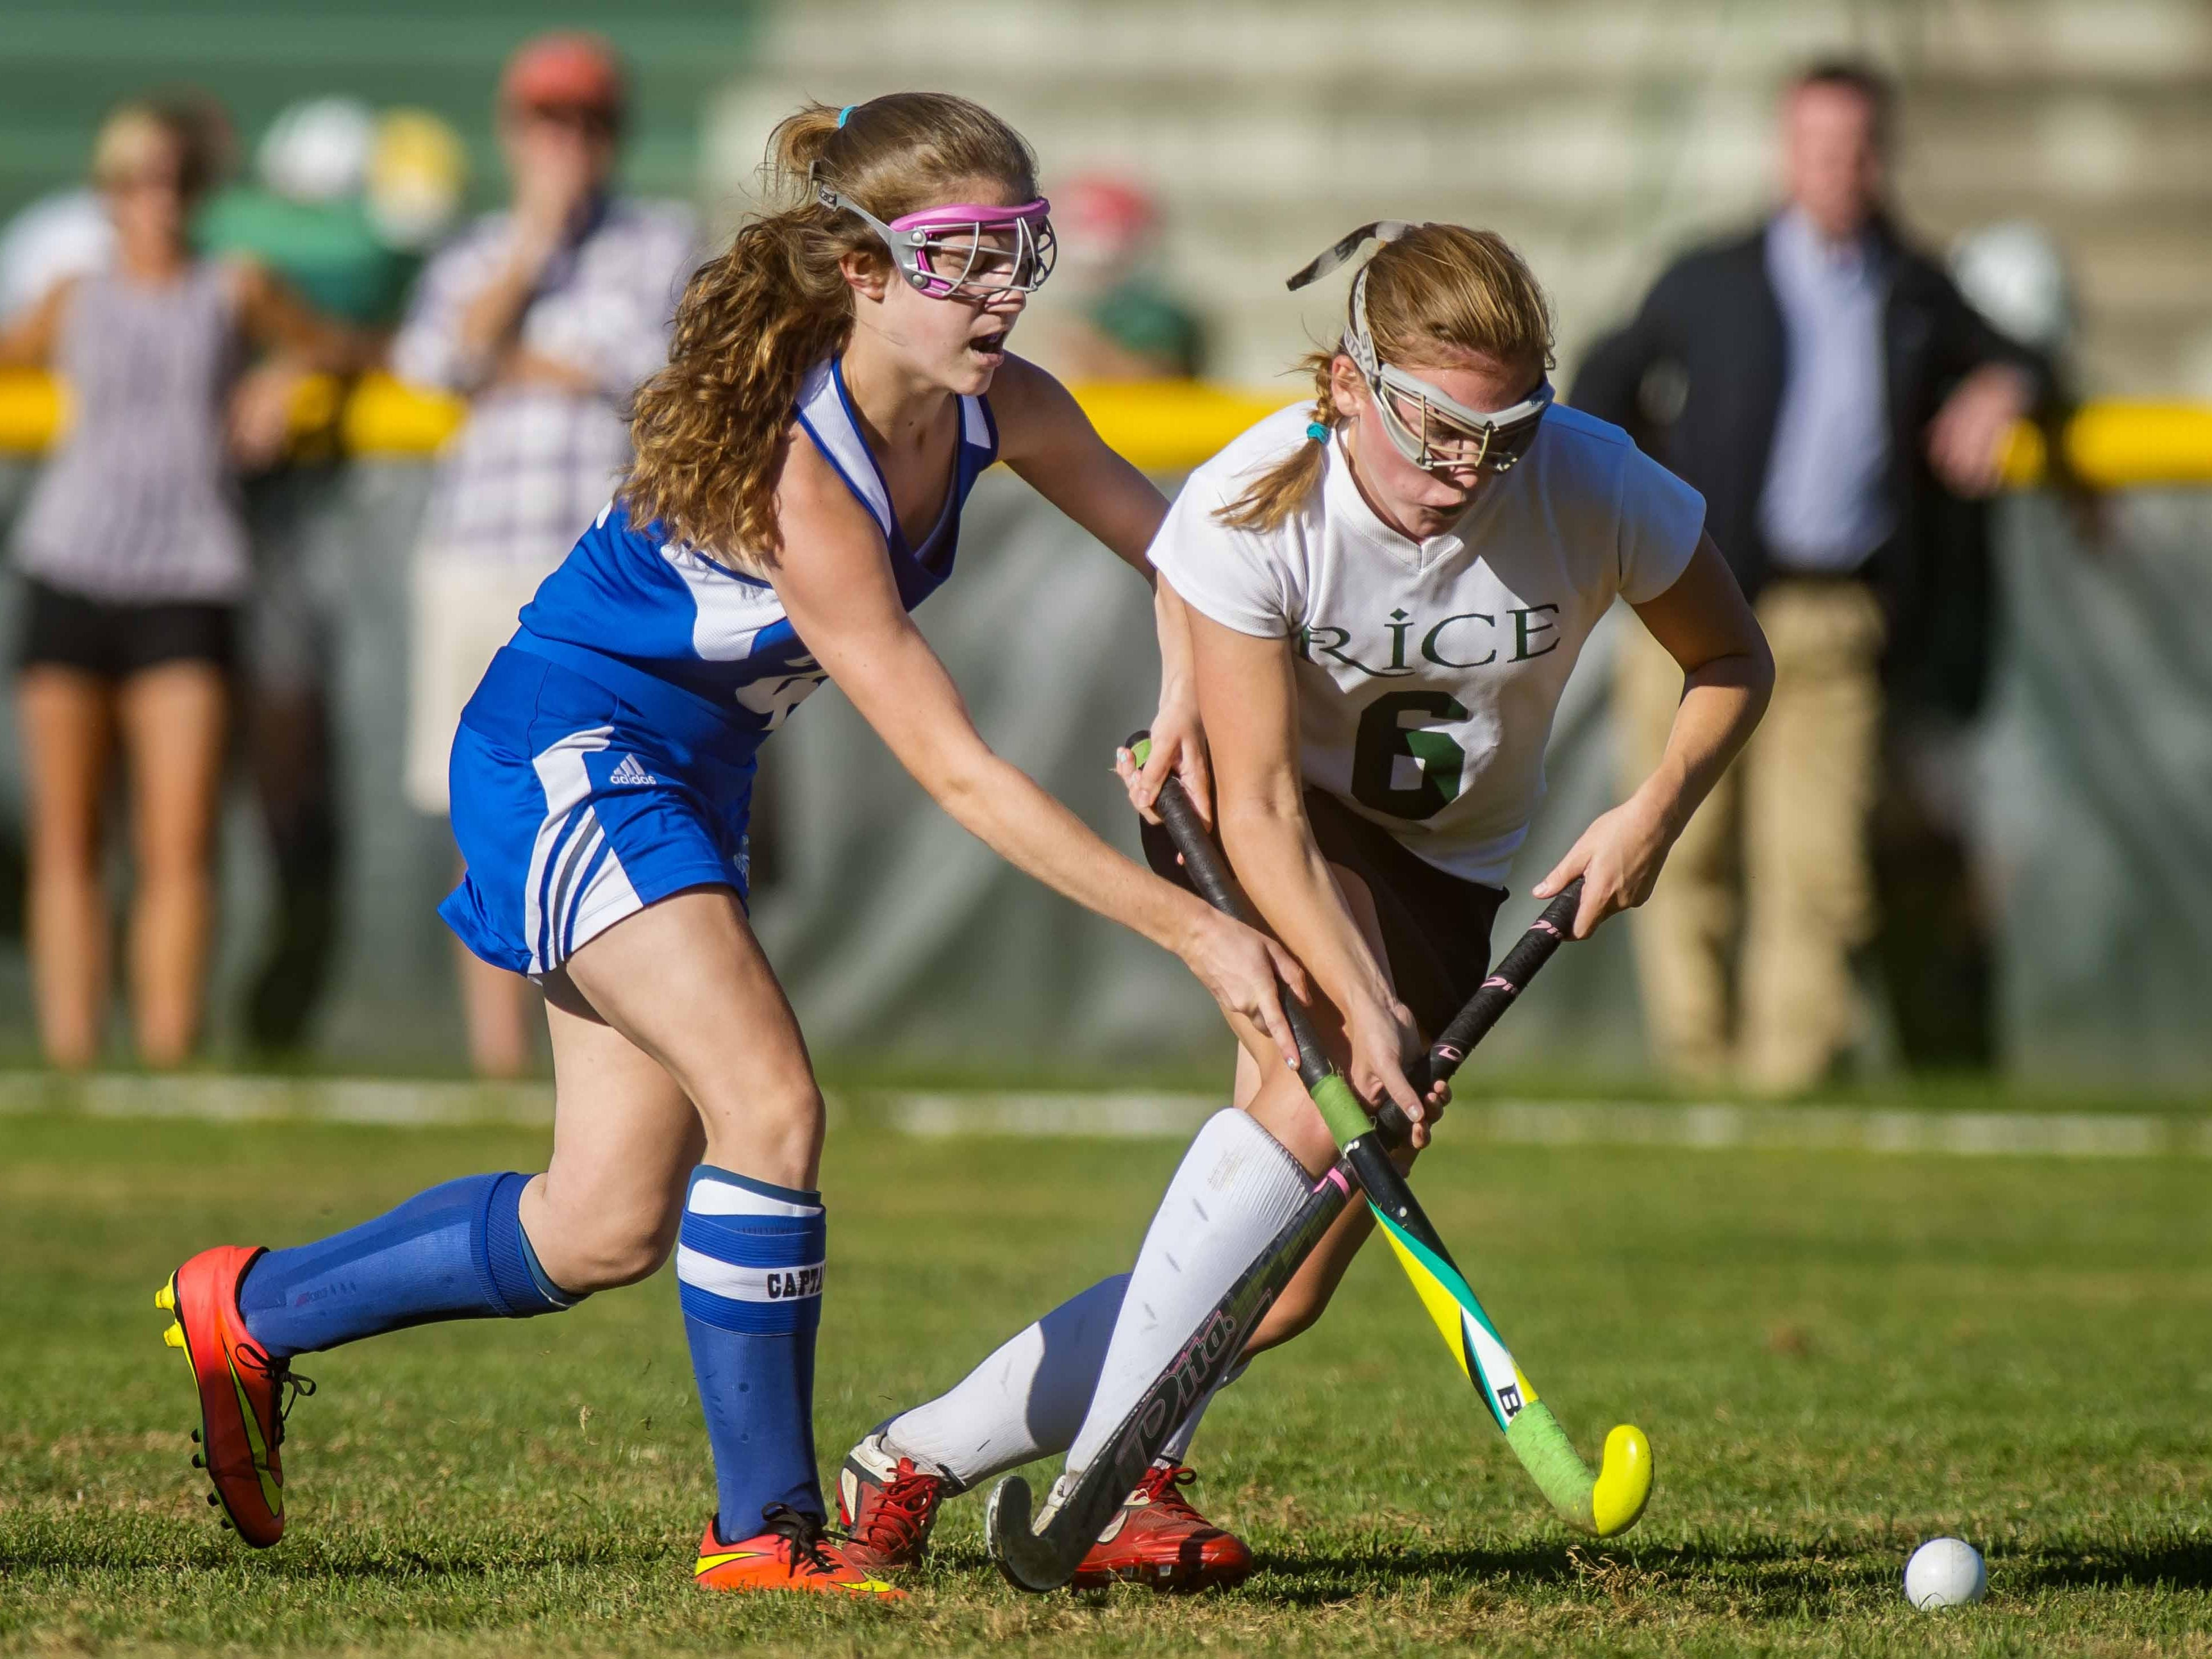 Rice's Clare Sheanan, right, keeps the ball away from Colchester's Katina Messier in South Burlington on Tuesday.